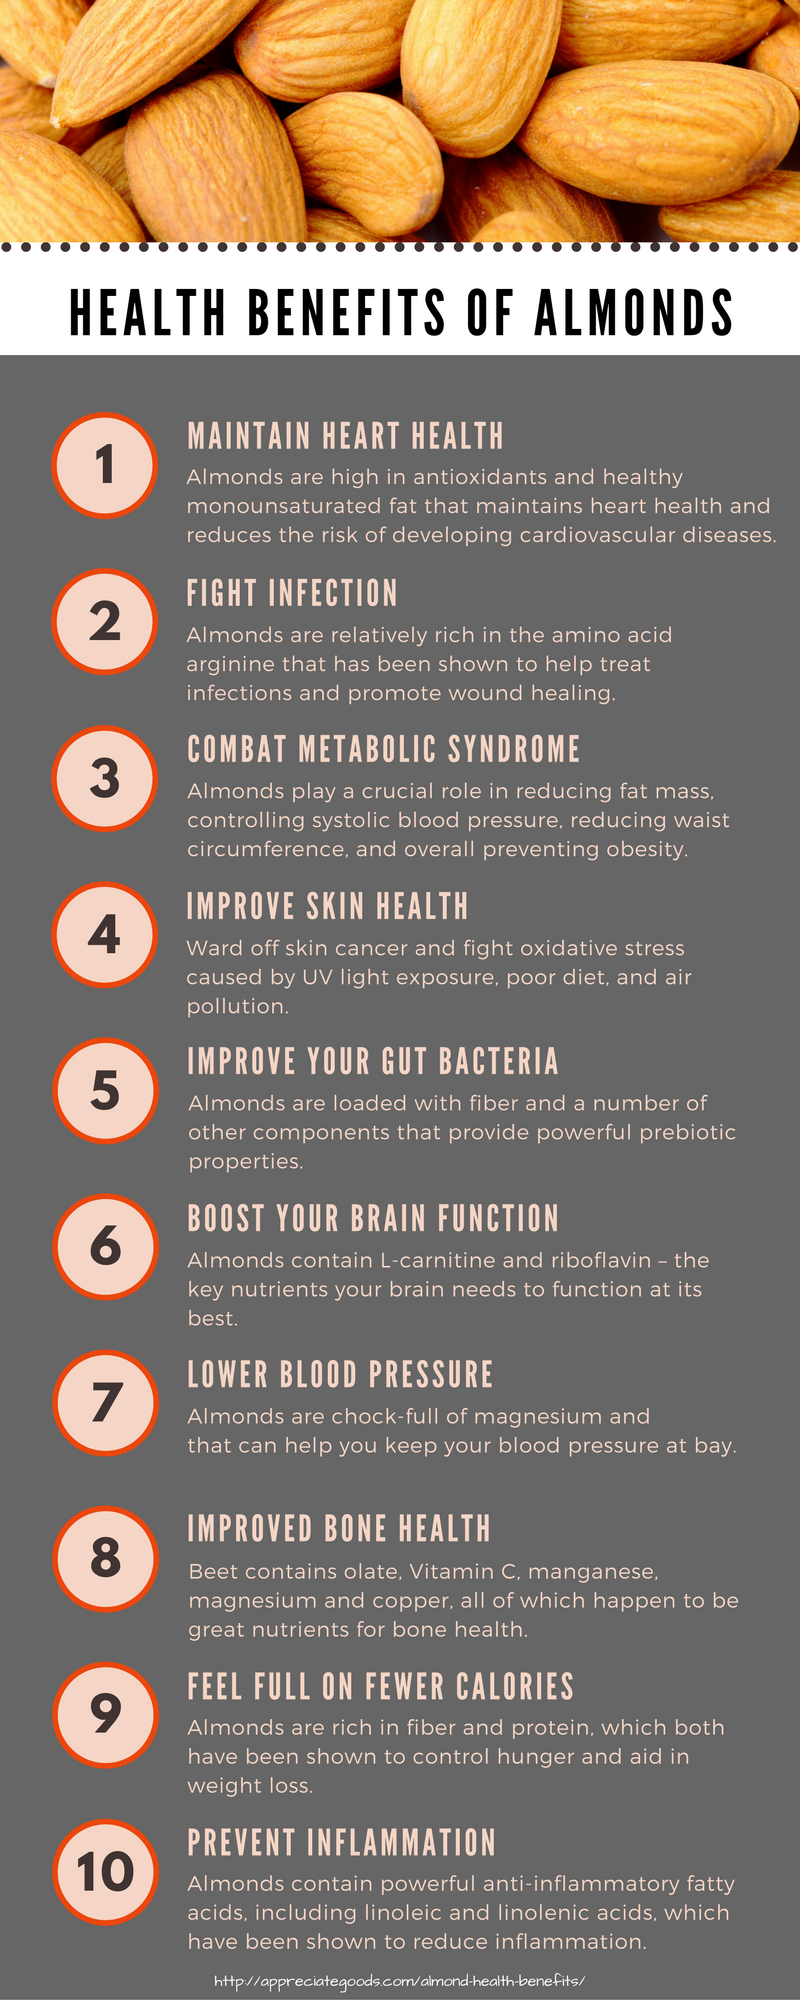 10-important-health-benefits-of-almond-infographic-edited